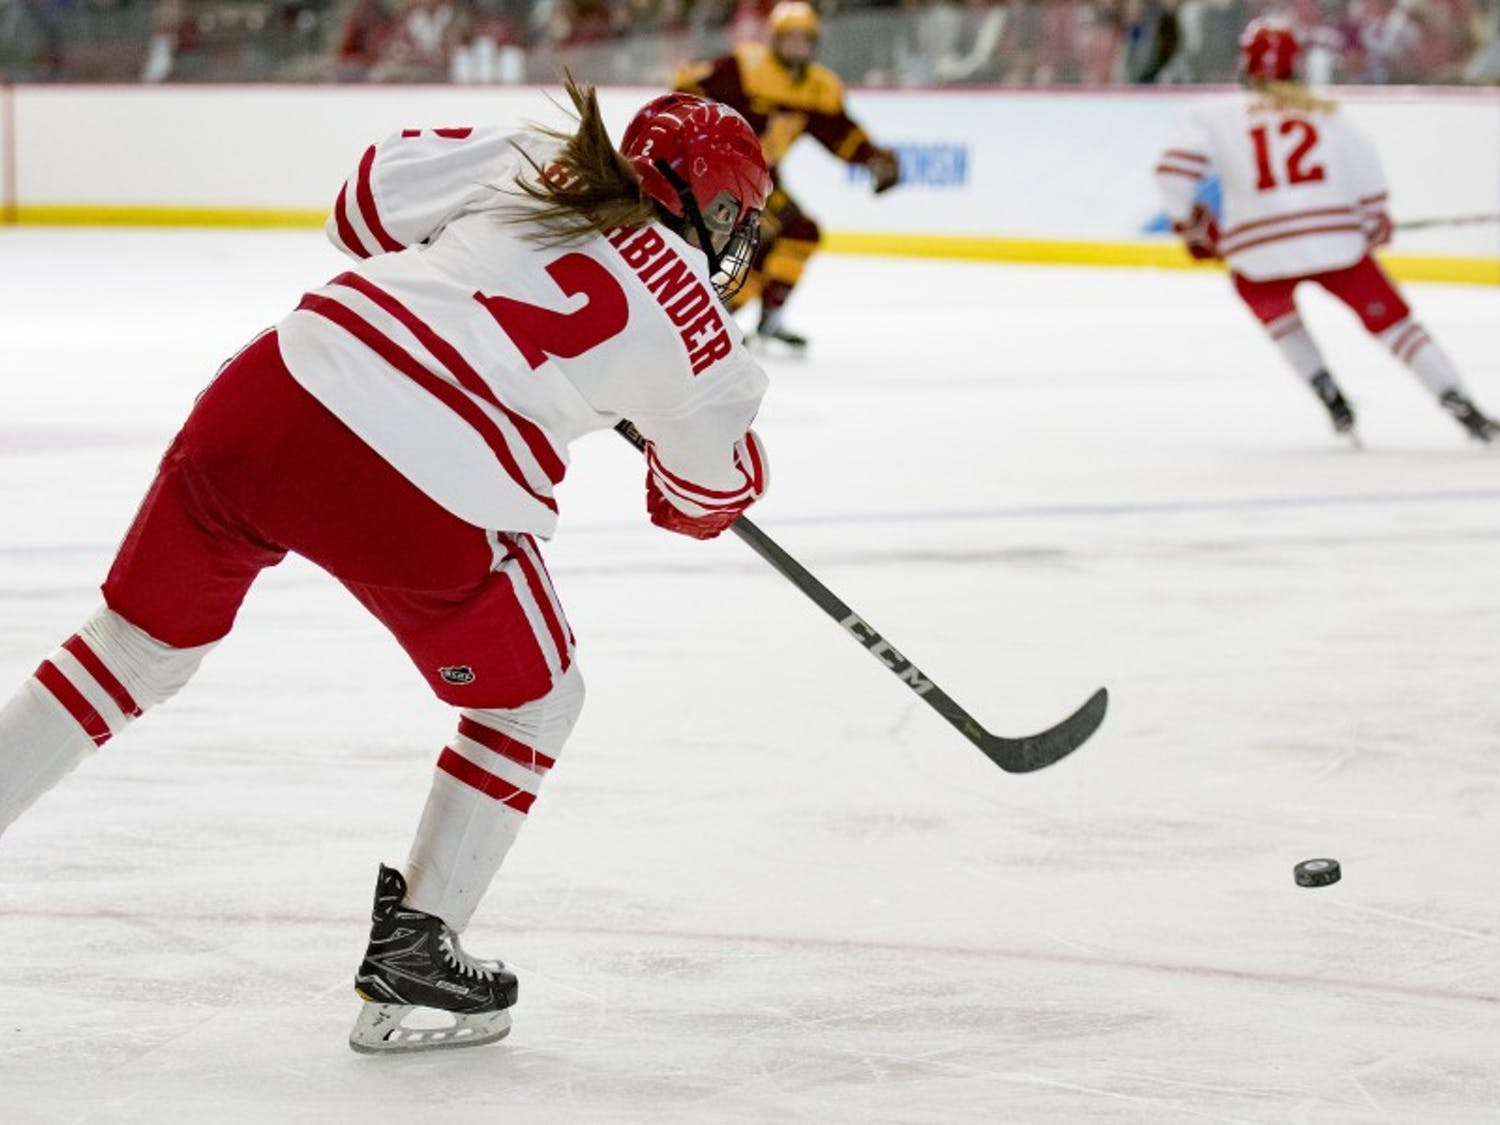 After a bye week, No. 1 Wisconsin looks to get back in rhythm as it travels to Bemidji to take on the Beavers, who just completed a sweep of No. 4 Ohio State.